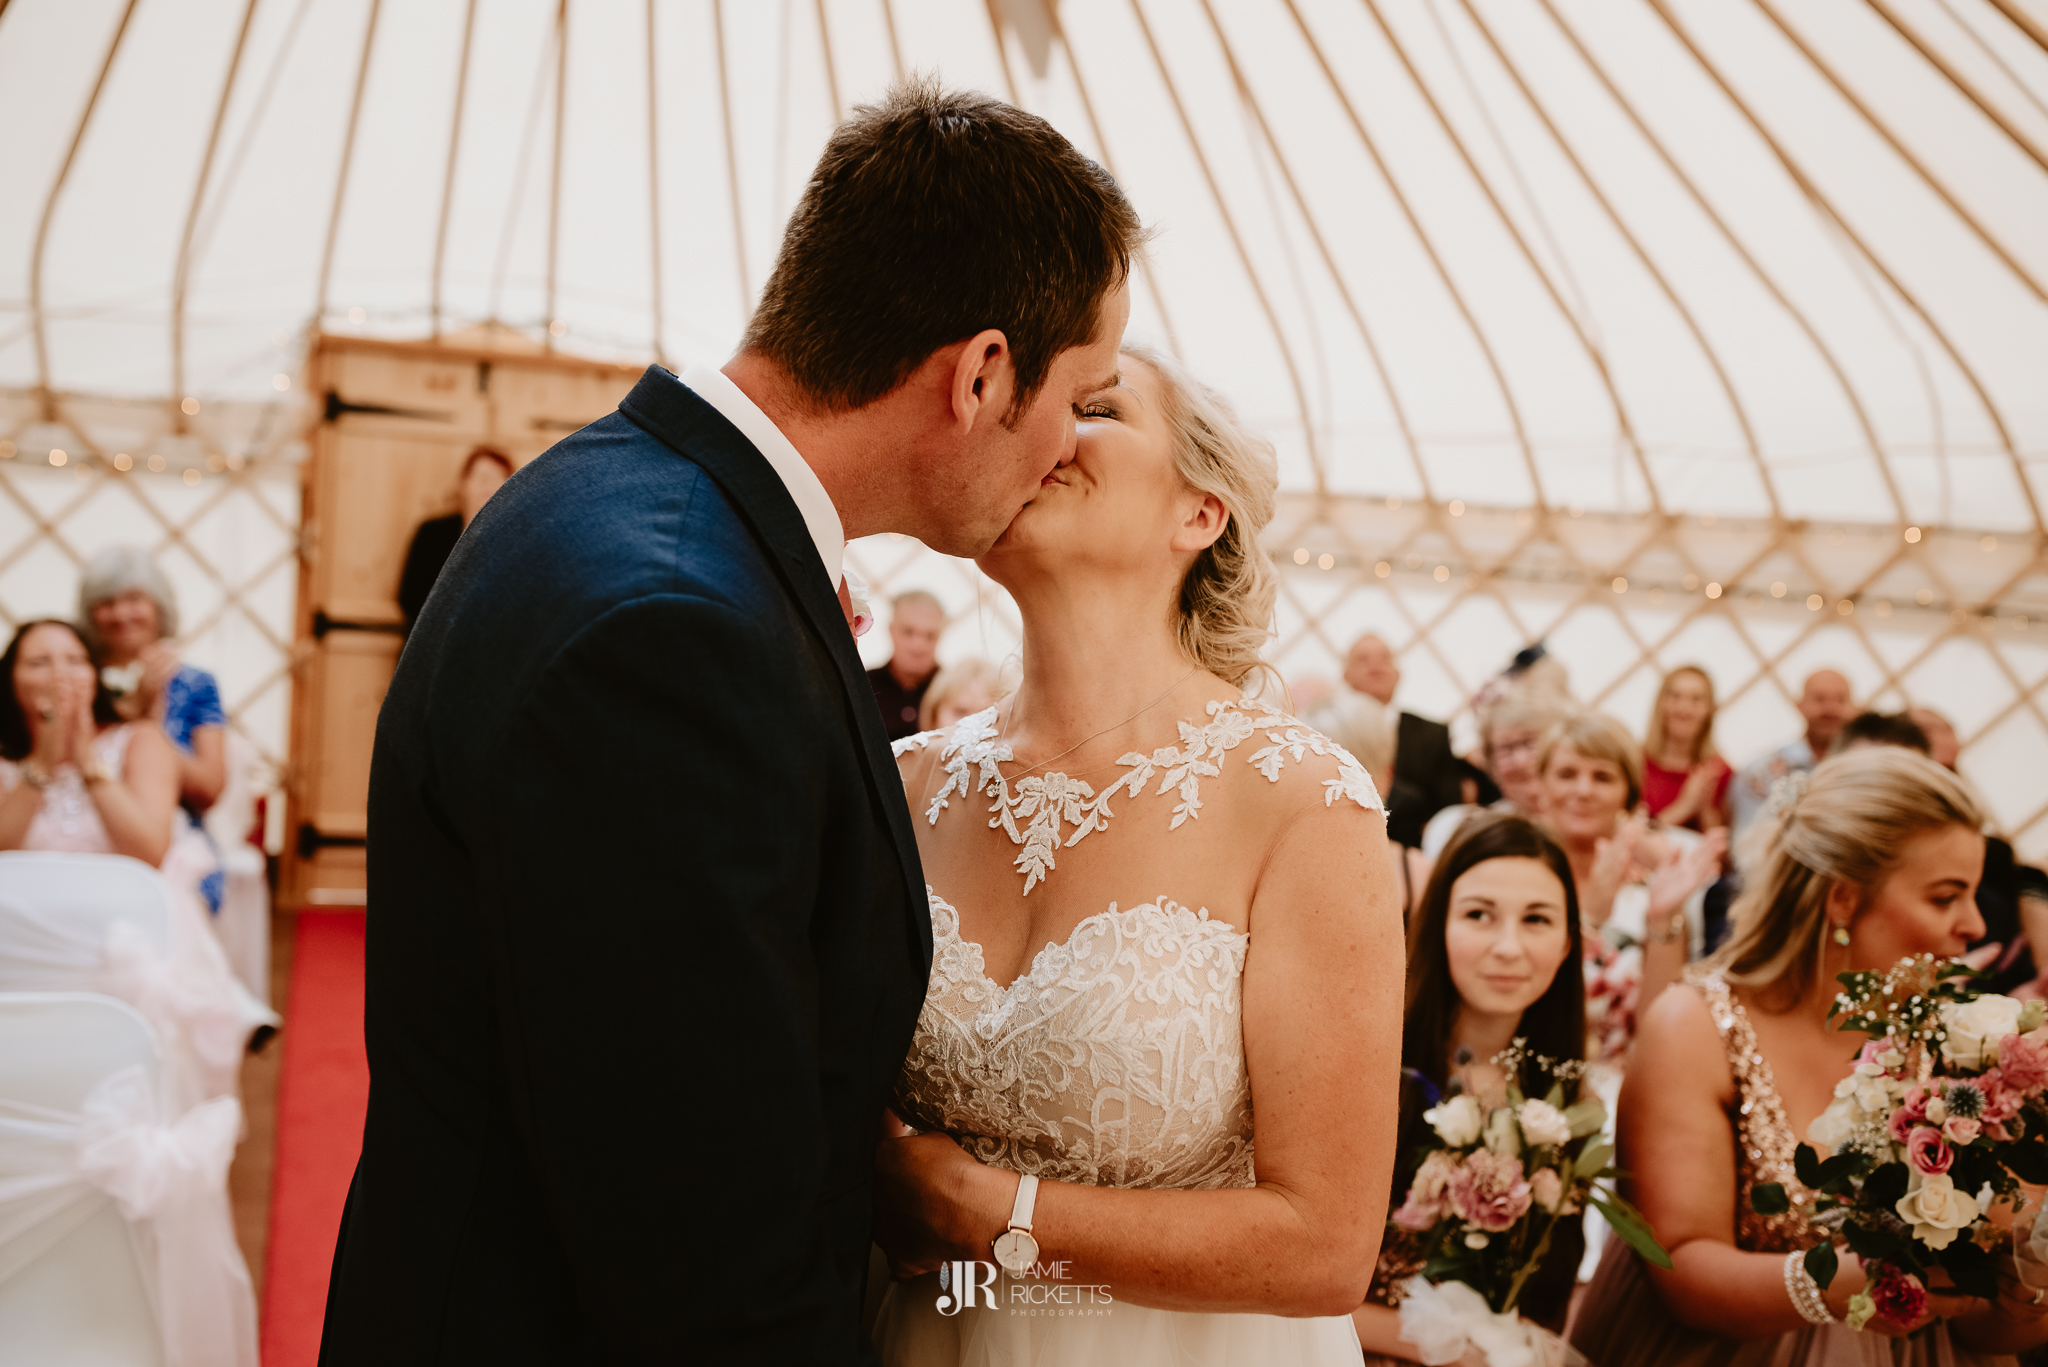 Wroxeter-Hotel-Wedding-Photography-In-Shropshire-By-Shropshire-Wedding-Photographer-Jamie-Ricketts-066.JPG